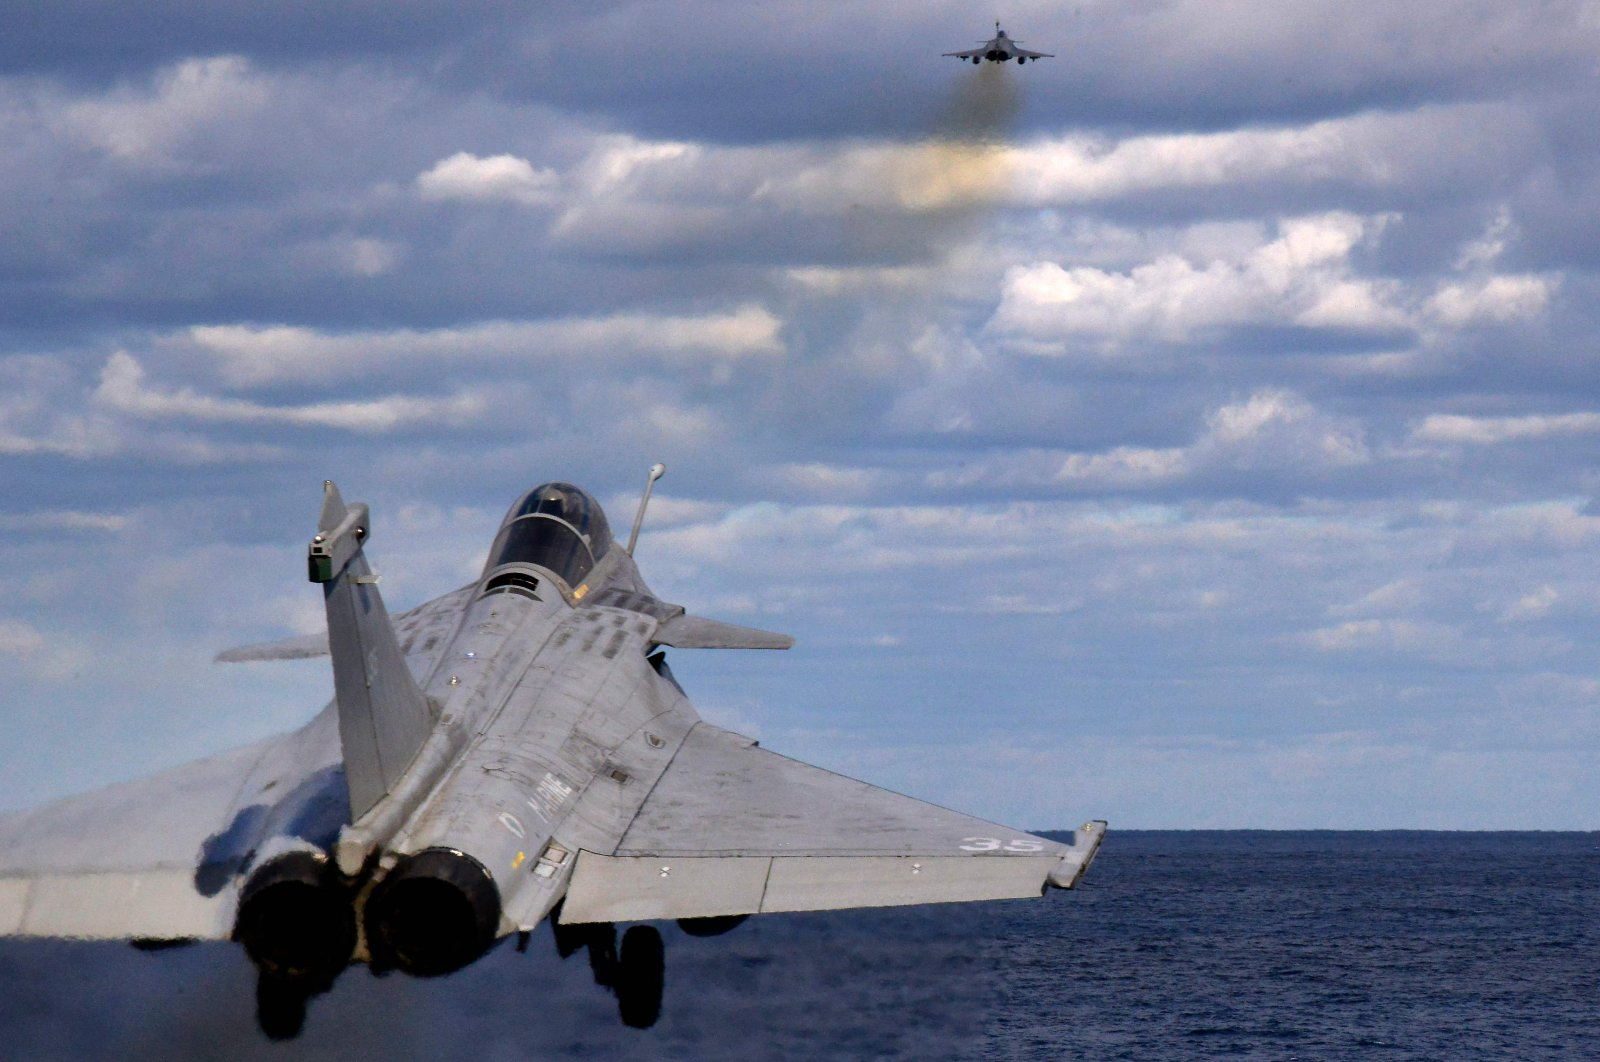 Two French Rafale fighter jets are catapulted from the French aircraft carrier, Charles de Gaulle, off the eastern coast of Cyprus in the Mediterranean Sea, Feb. 10, 2020. (AFP Photo)